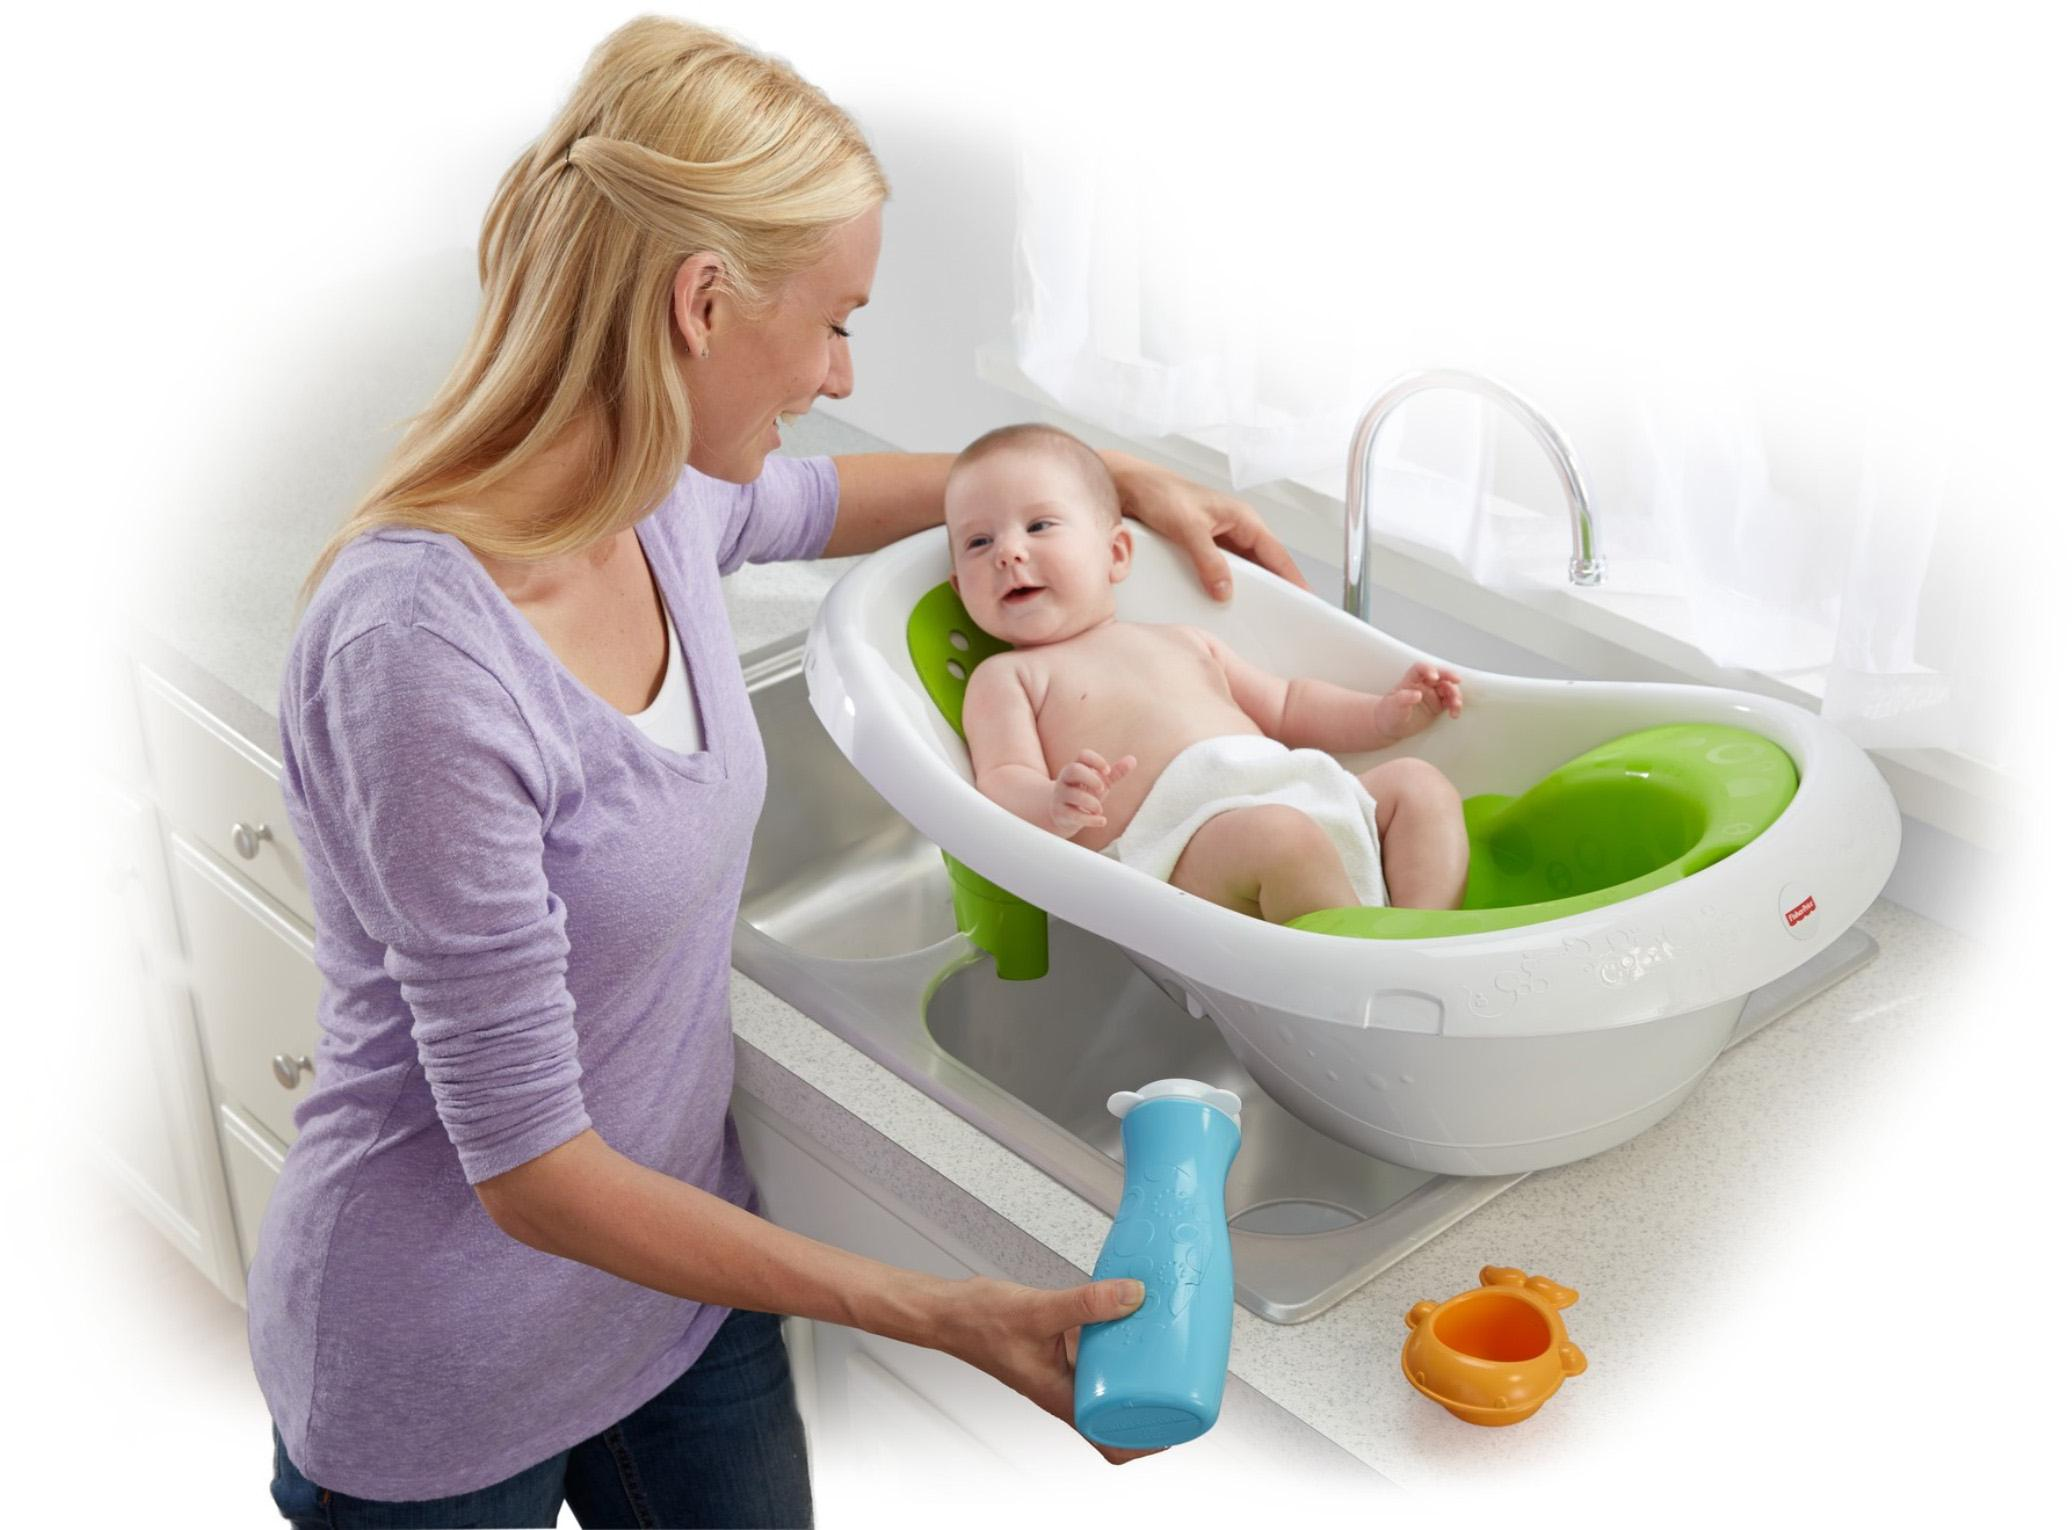 Amazon.com : Fisher-Price 4-in-1 Sling \'n Seat Tub : Baby